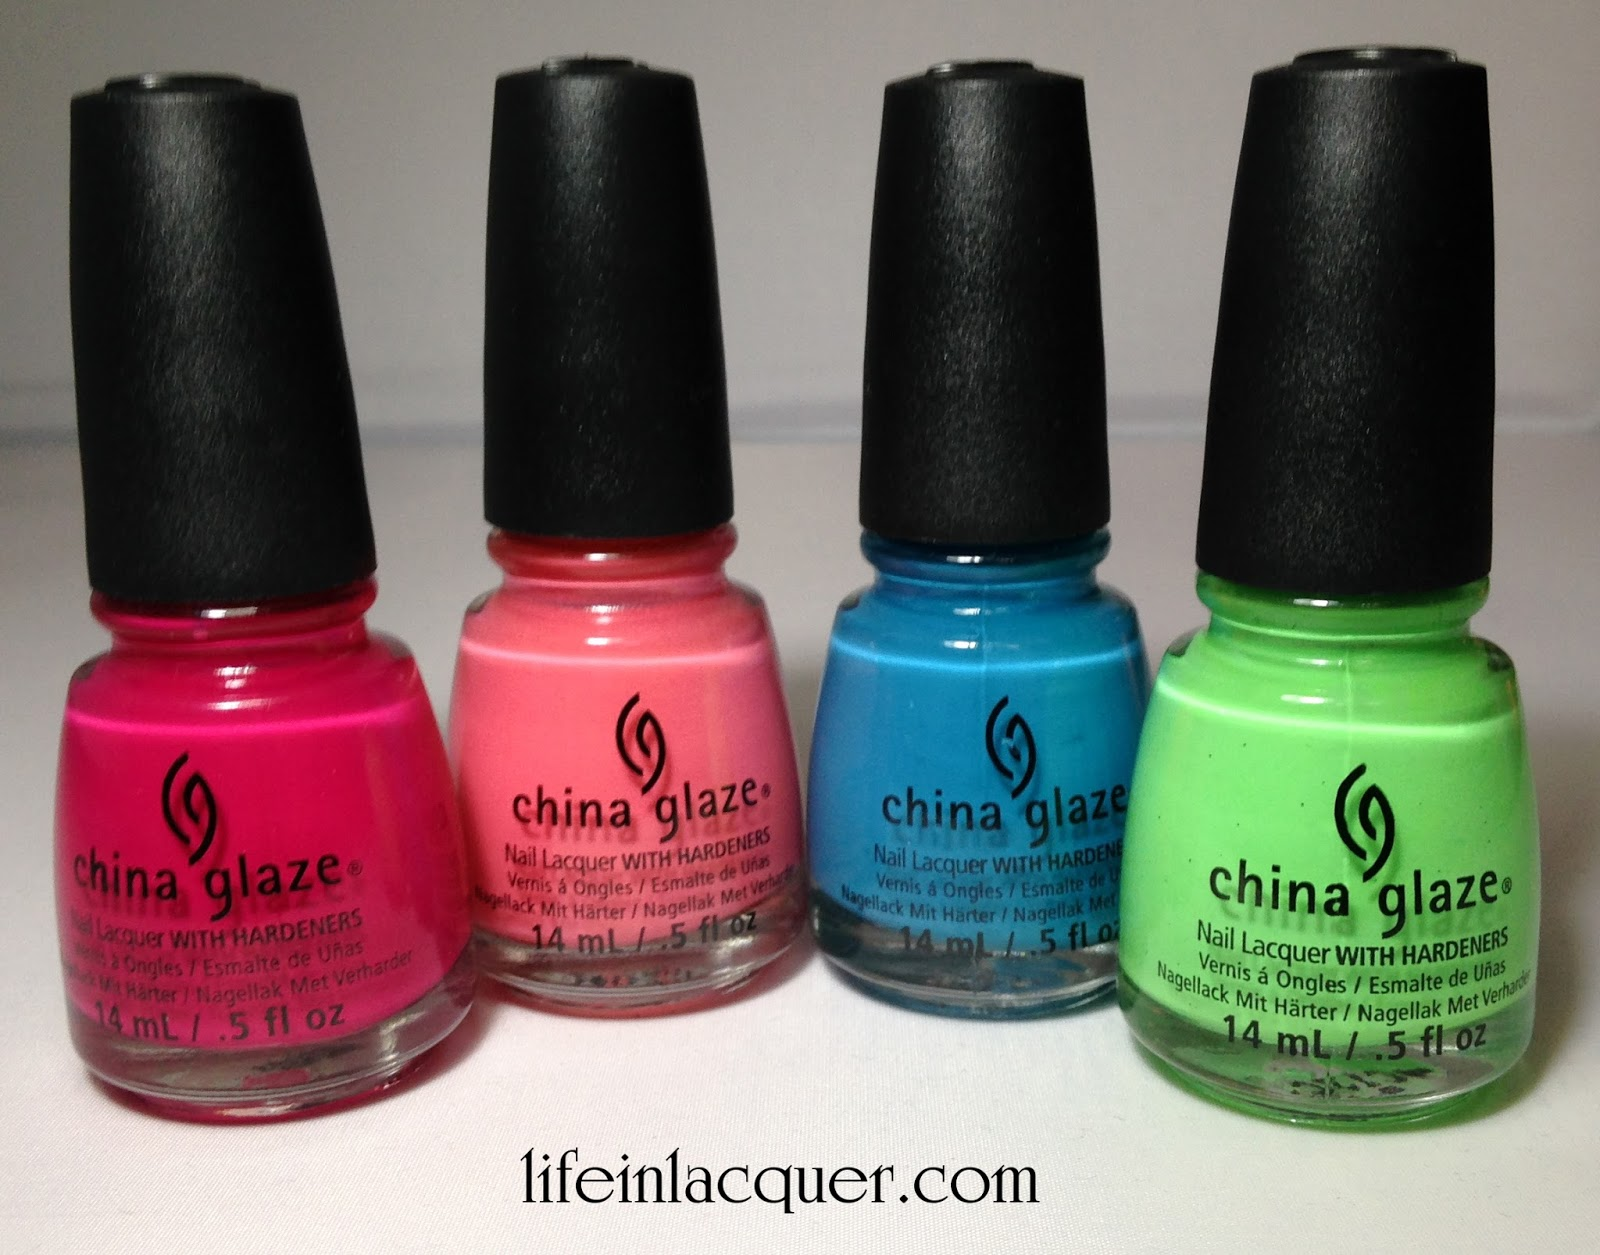 Heli-Yum, Surreal Appeal, Wait N' Sea, Shore Enuff bottle swatch